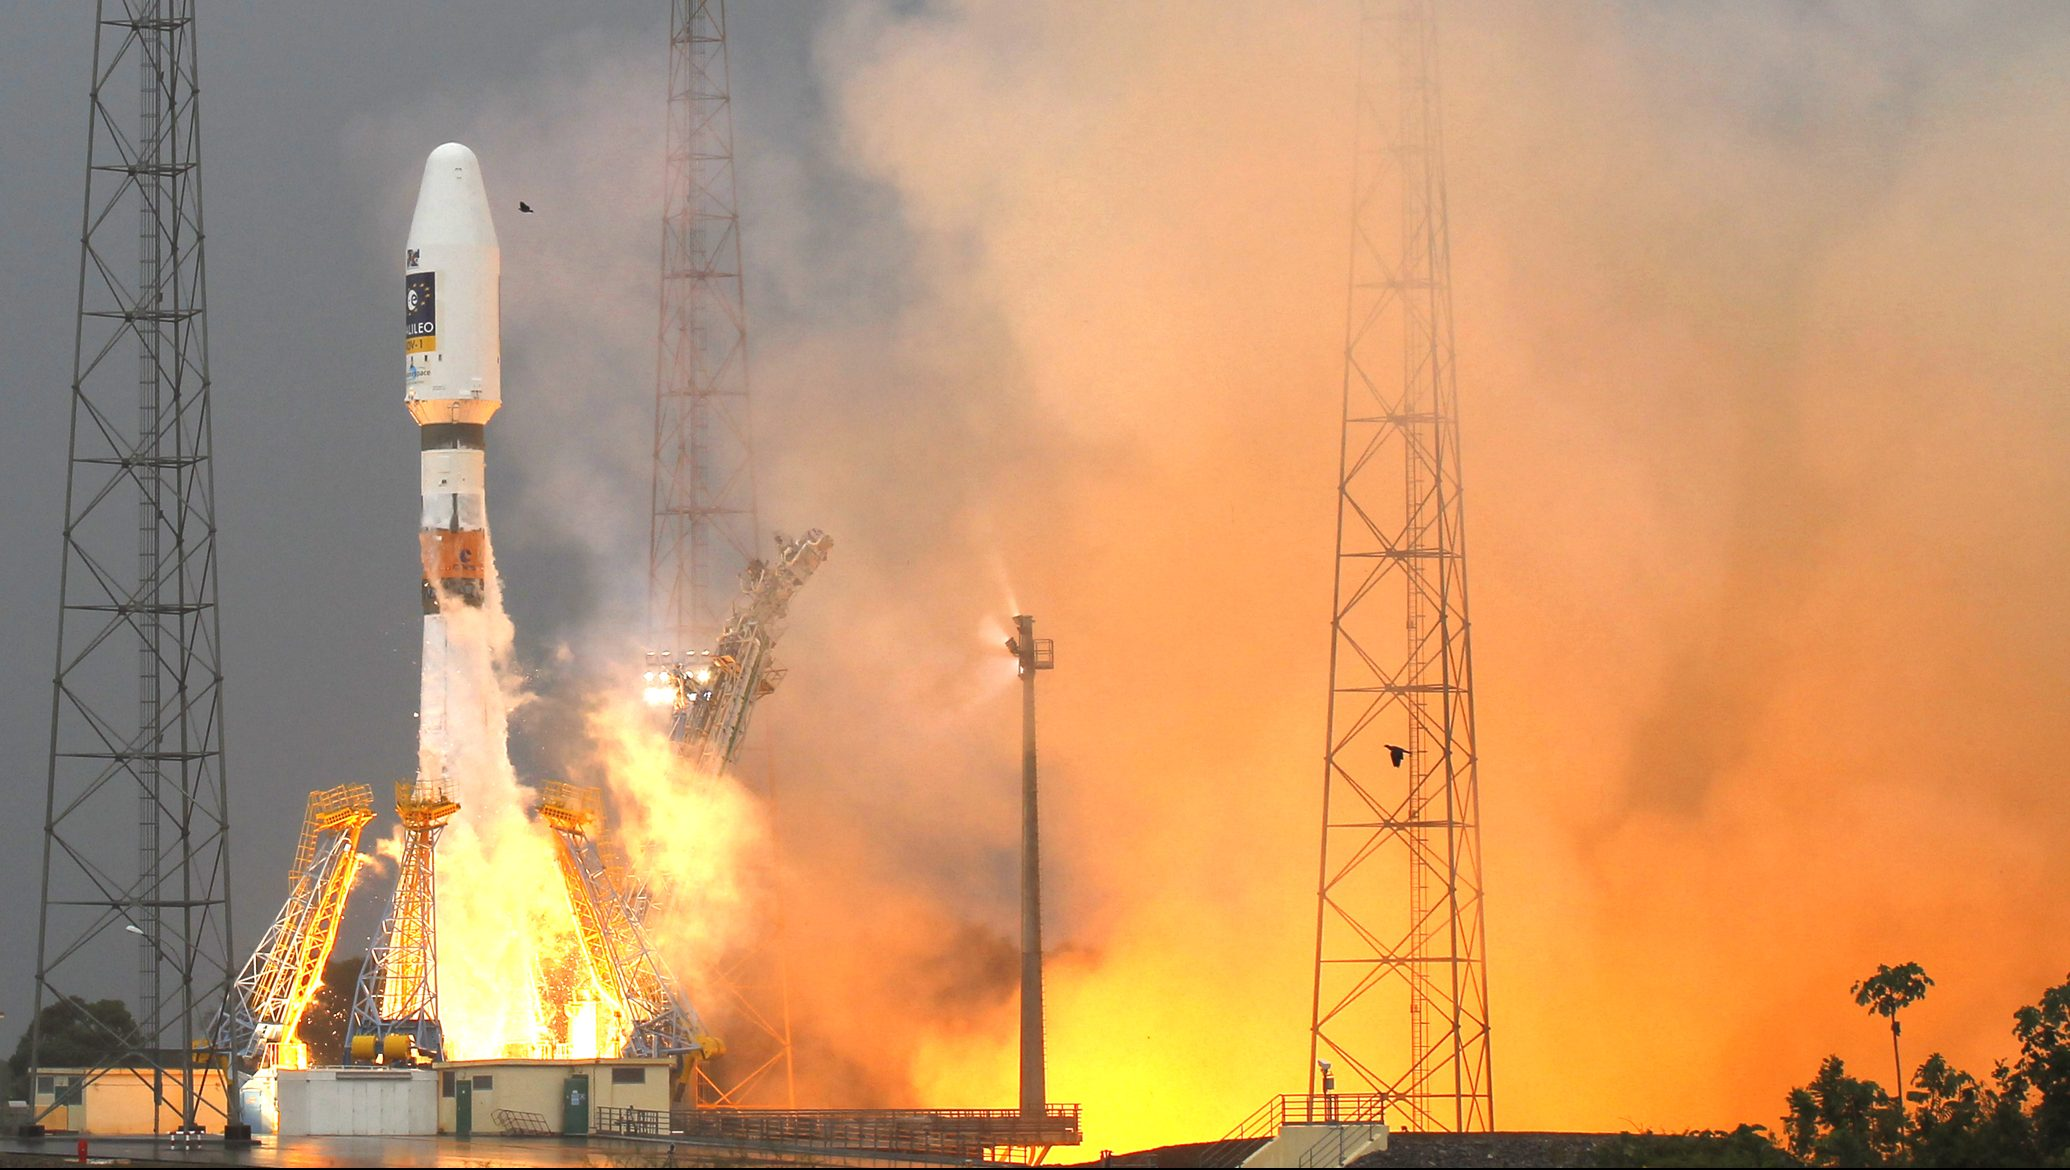 The Russian Soyuz VS01 rocket, carrying the first two satellites of Europe's Galileo navigation system, blasts off from its launchpad at the Guiana Space Center in Sinnamary, French Guiana, October 21, 2011.